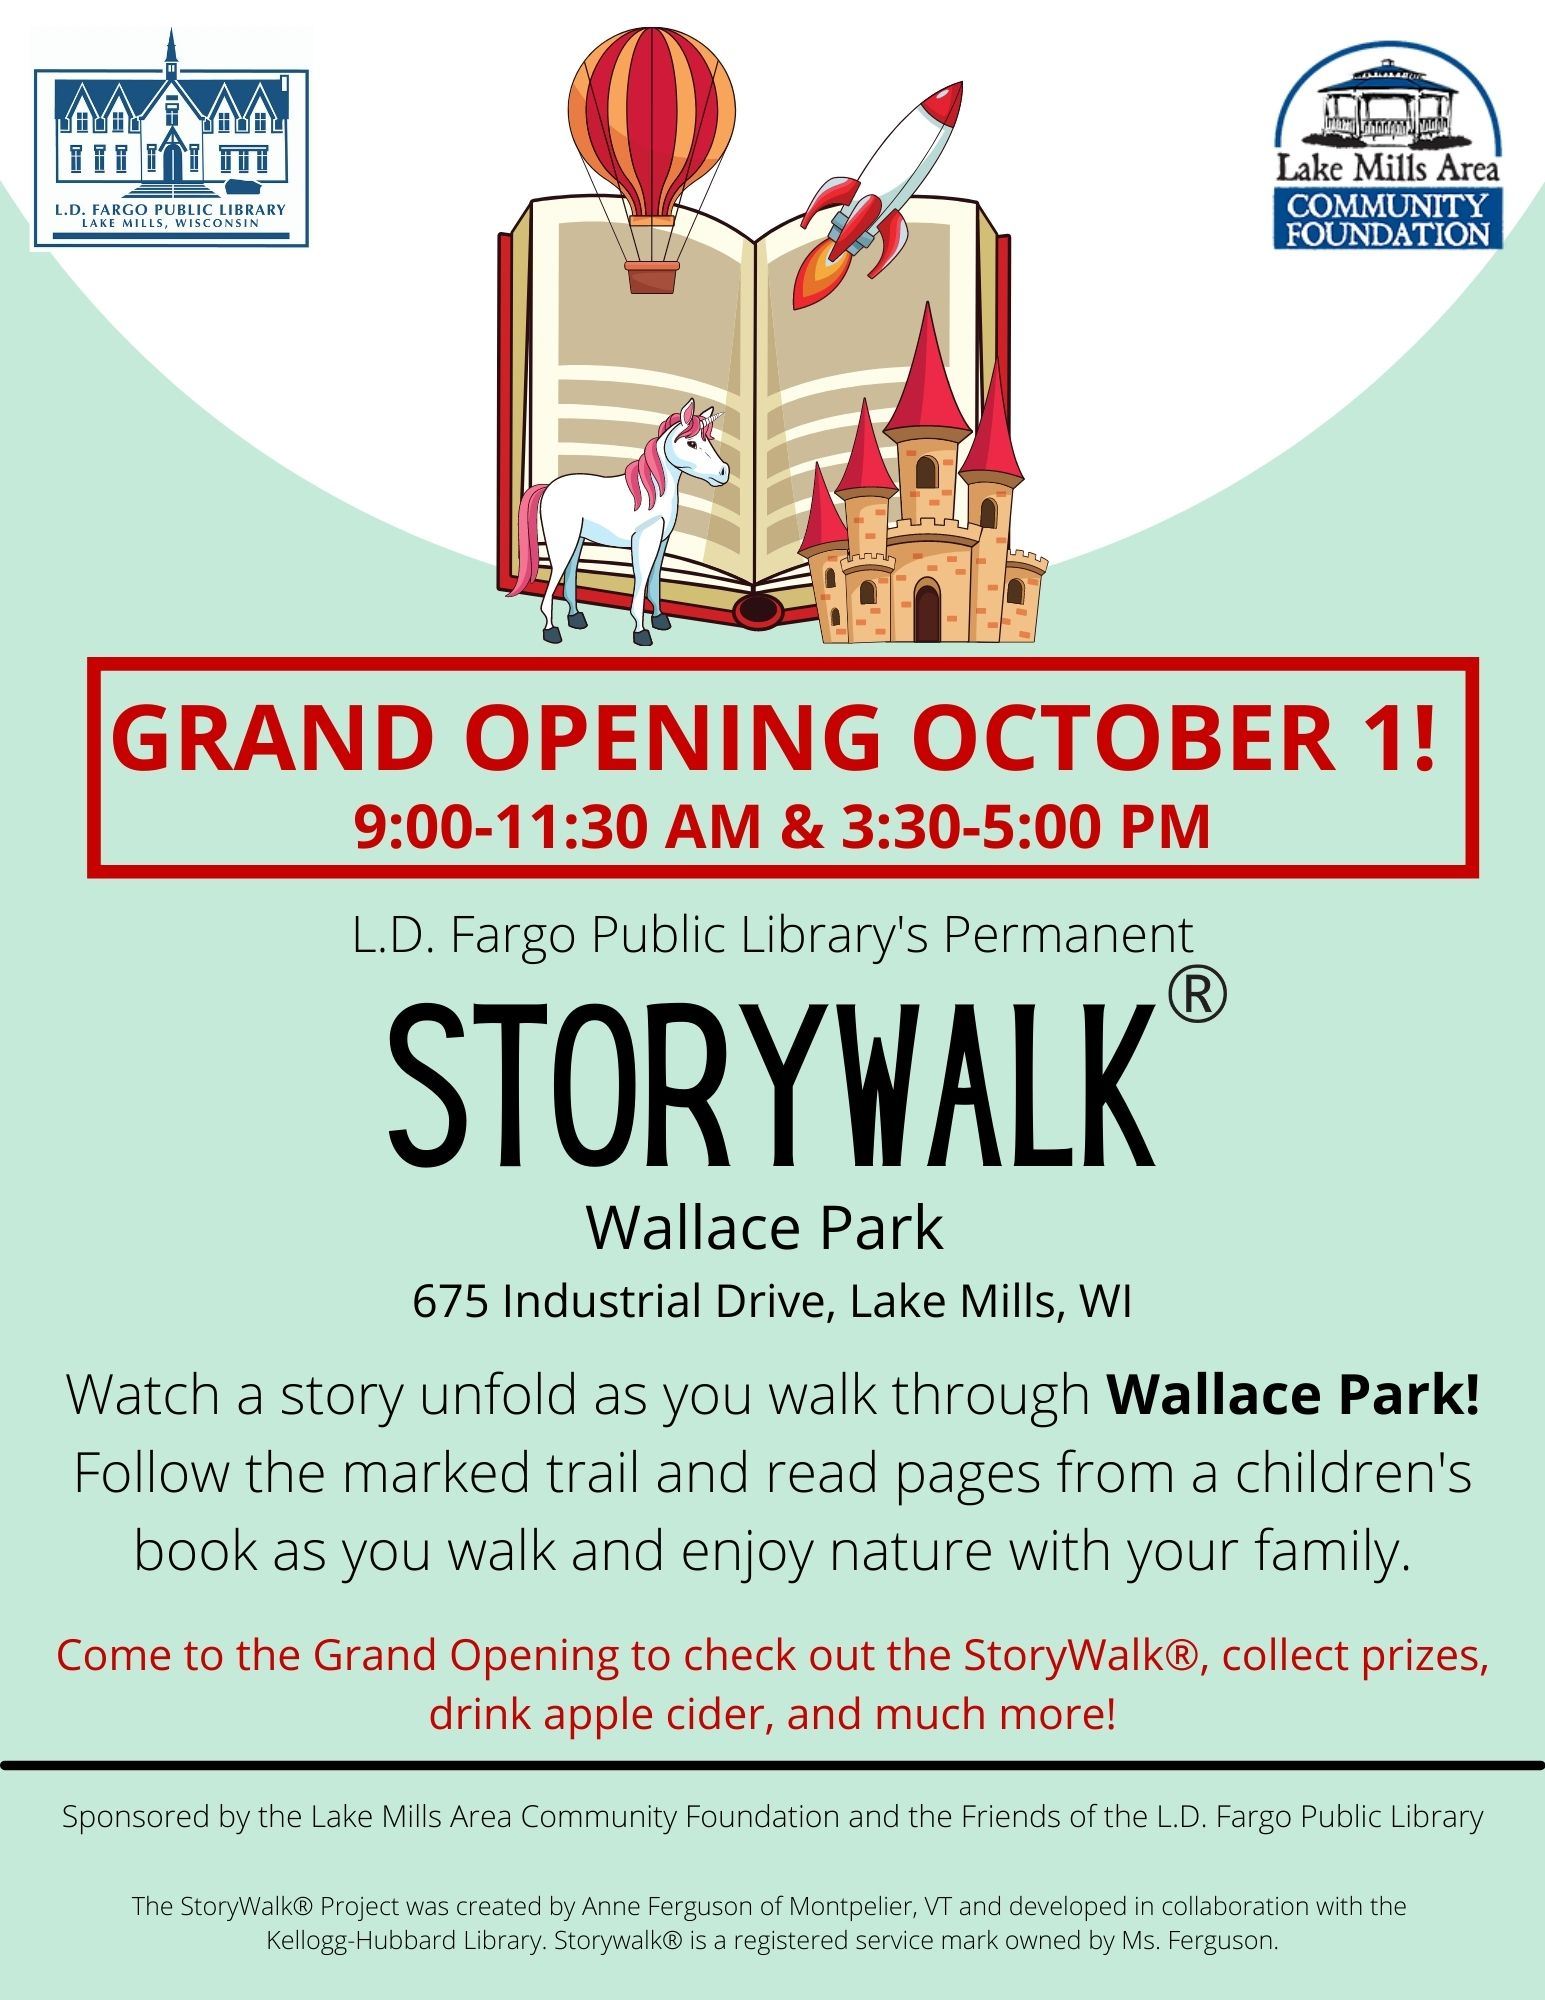 Grand Opening October 1! L.D. Fargo Public Library's Permanent StoryWalk® in Wallace Park!  Follow the marked trail and read pages from a children's book as you walk and enjoy nature with your family.  Watch the library's website and social media pages for updates.